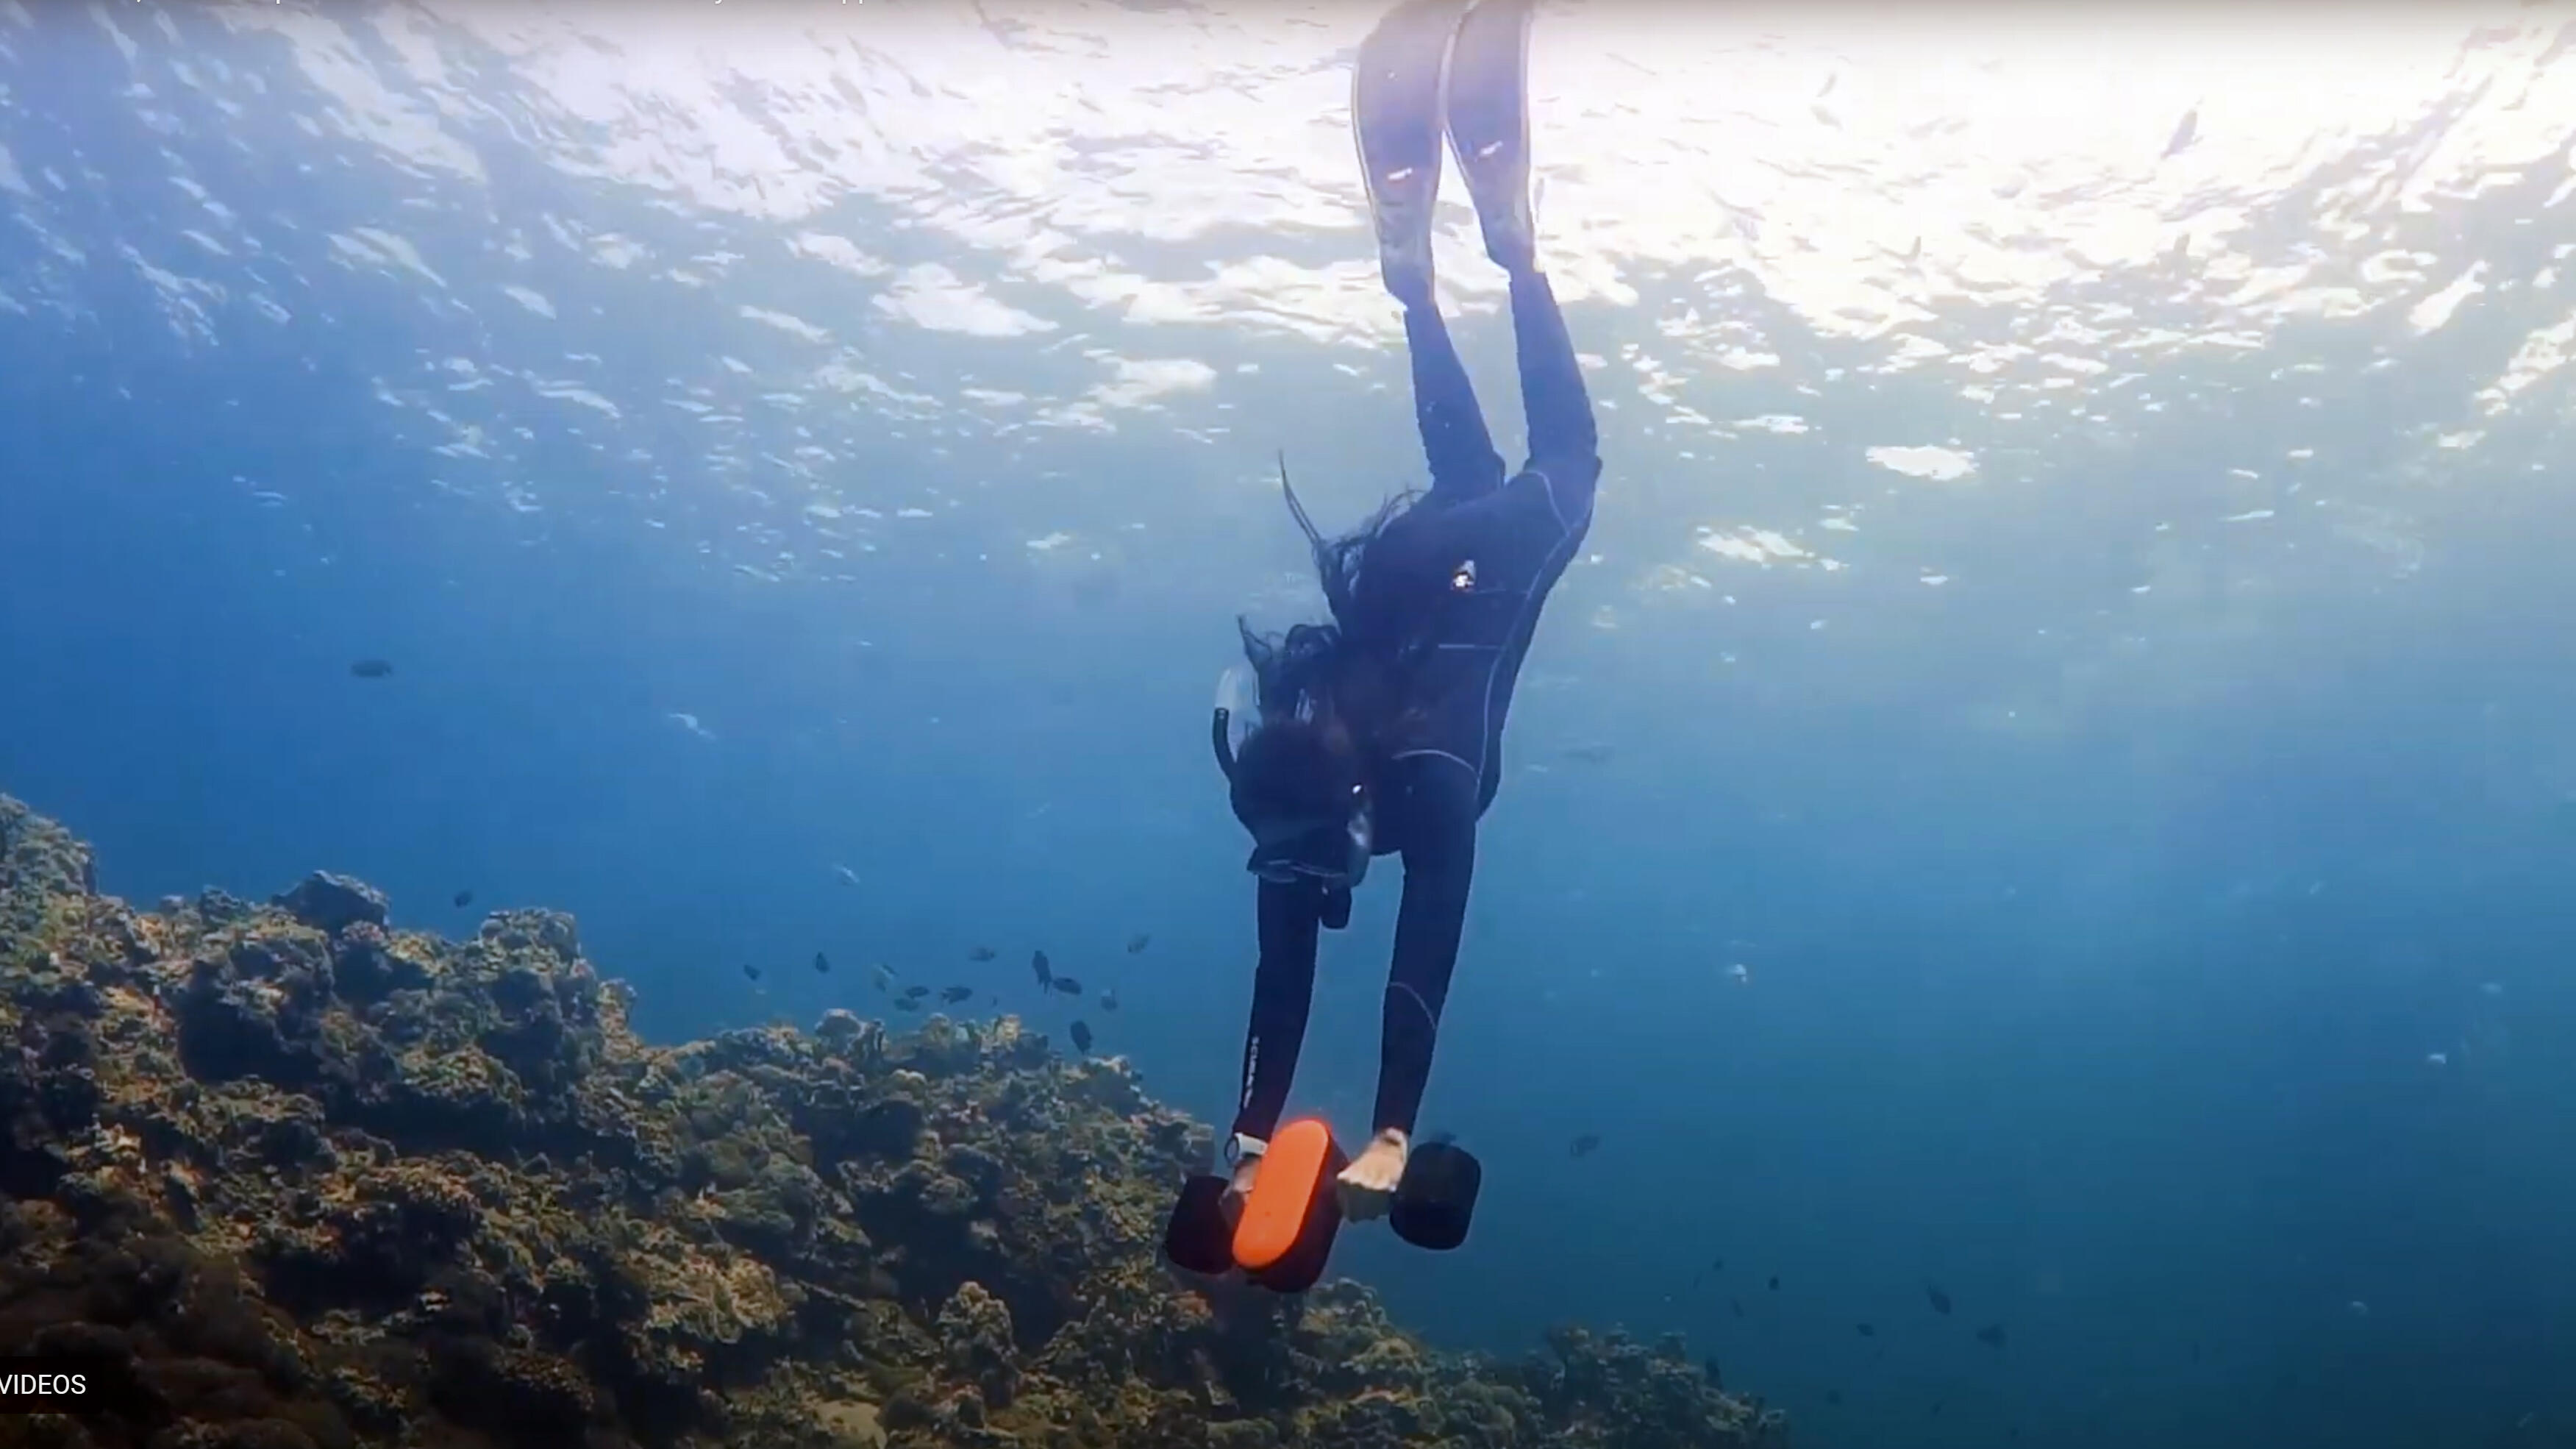 Swim away with this underwater scooter for just 4